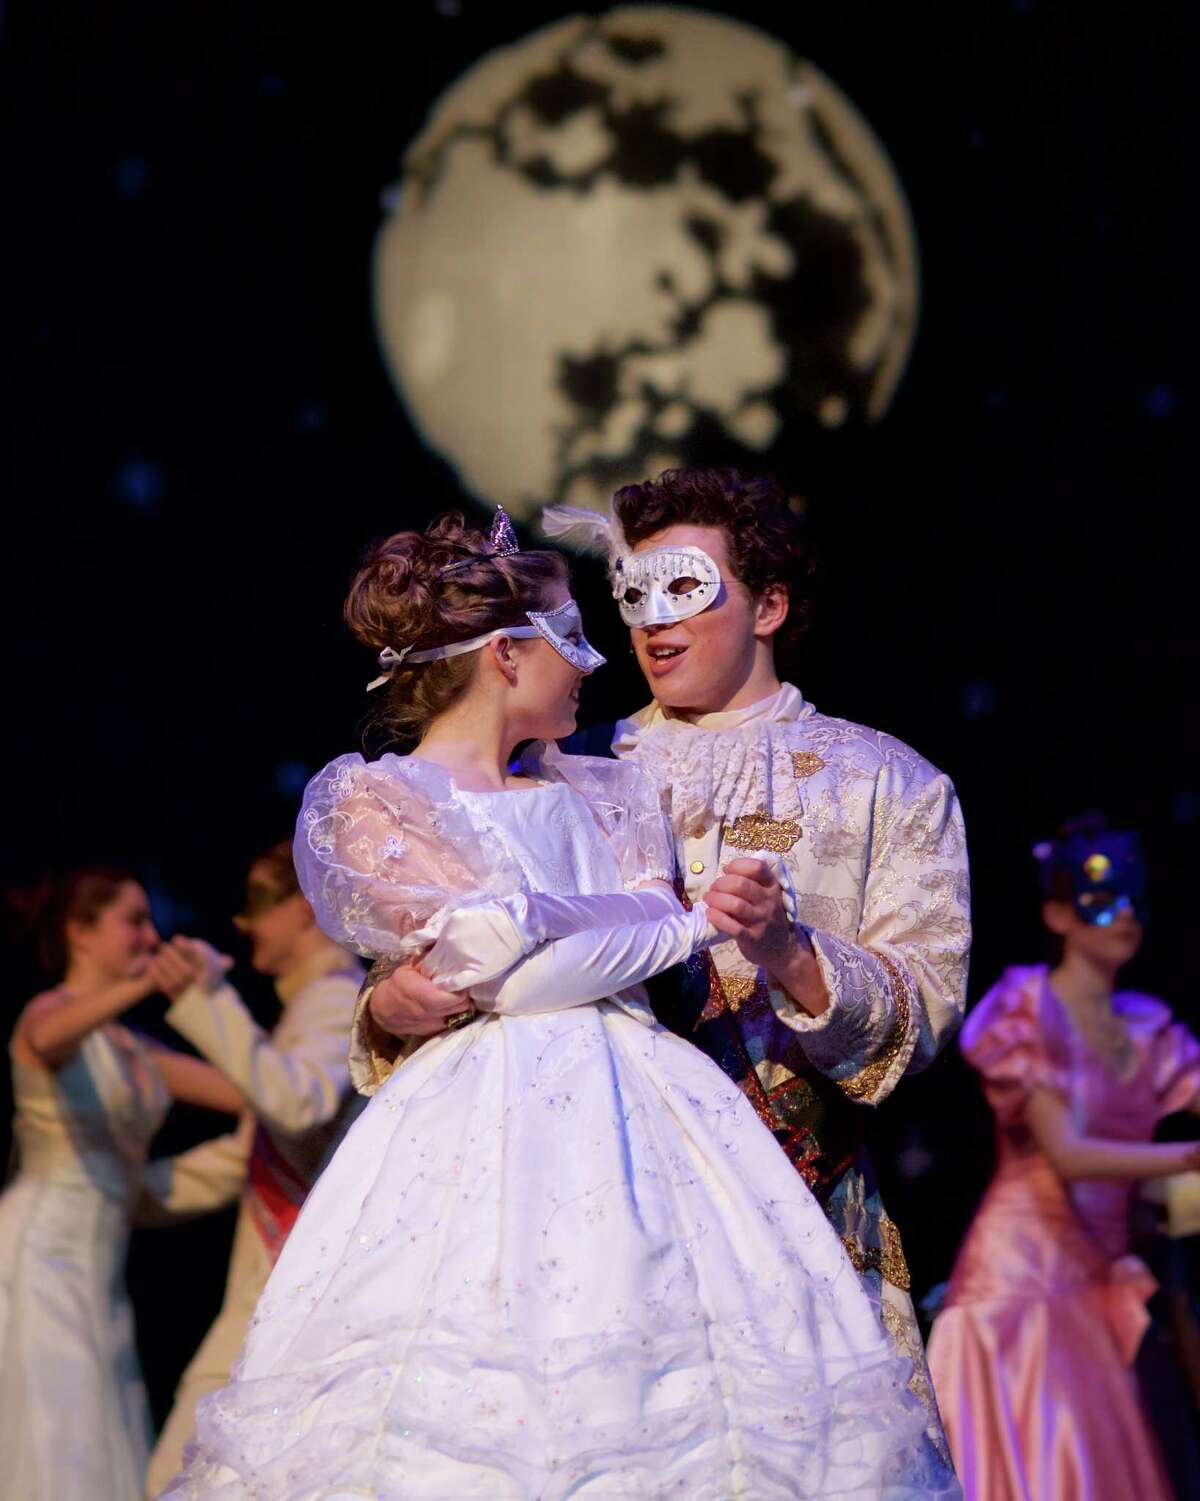 """New Milford High School will present its all-school musical of 2016, """"Rodgers & Hammerstein's Cinderella,"""" beginning March 18, 2016. Above, Cinderella, played by Cassie Bielmeier, dances with the prince, played by Tony Harkin. Following opening night, the play will be staged March 19 and April 1 at 7 p.m., as well as March 20 at 3 p.m. and April 2 at 2 and 7 p.m. Tickets are $10 and may be reserved by calling 860-350-6647, ext. 1552."""